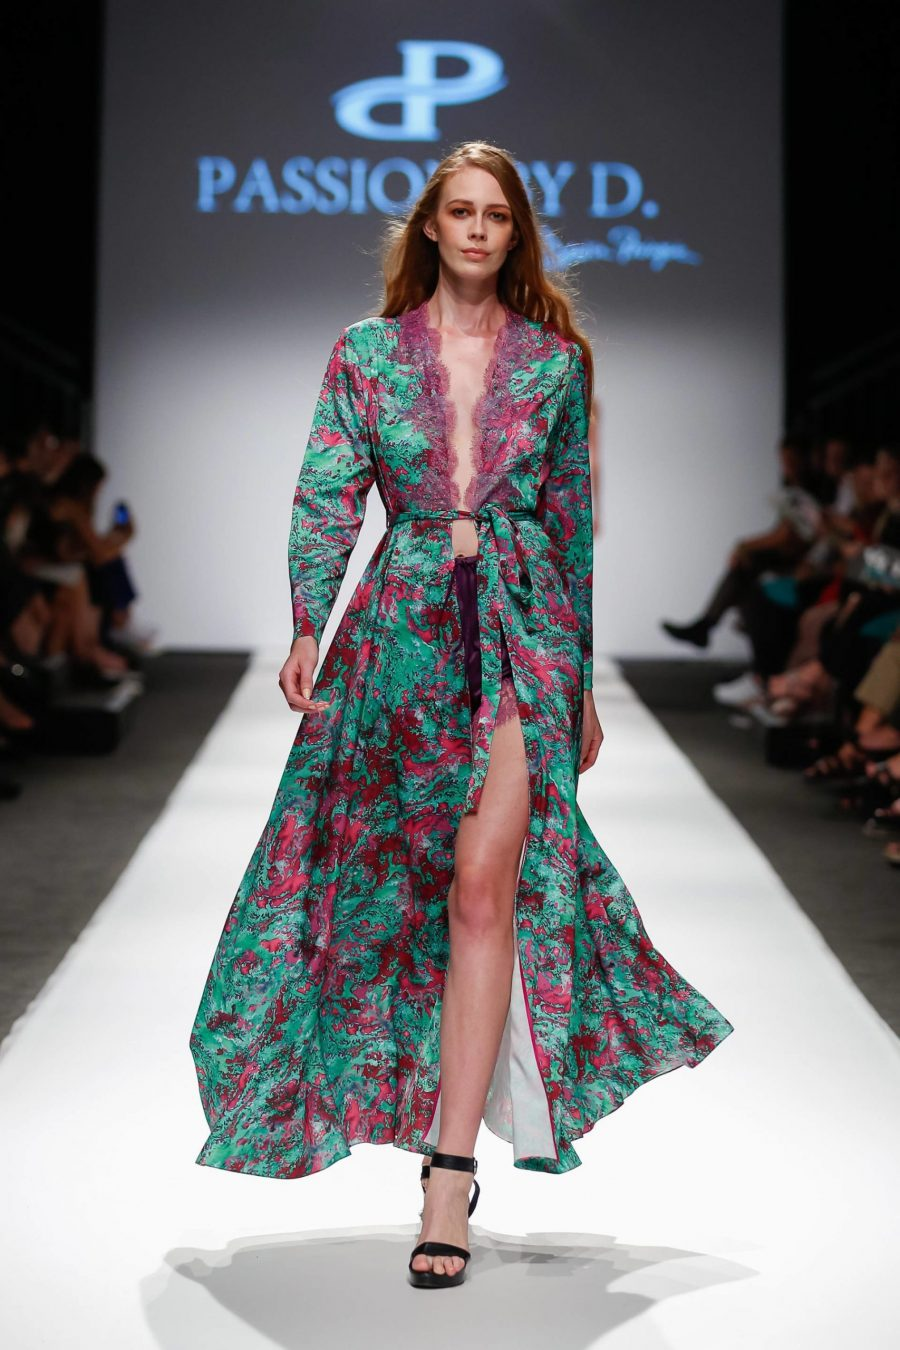 robe dress Fashion Show Vienna Fashion week 2019 - Passion by D